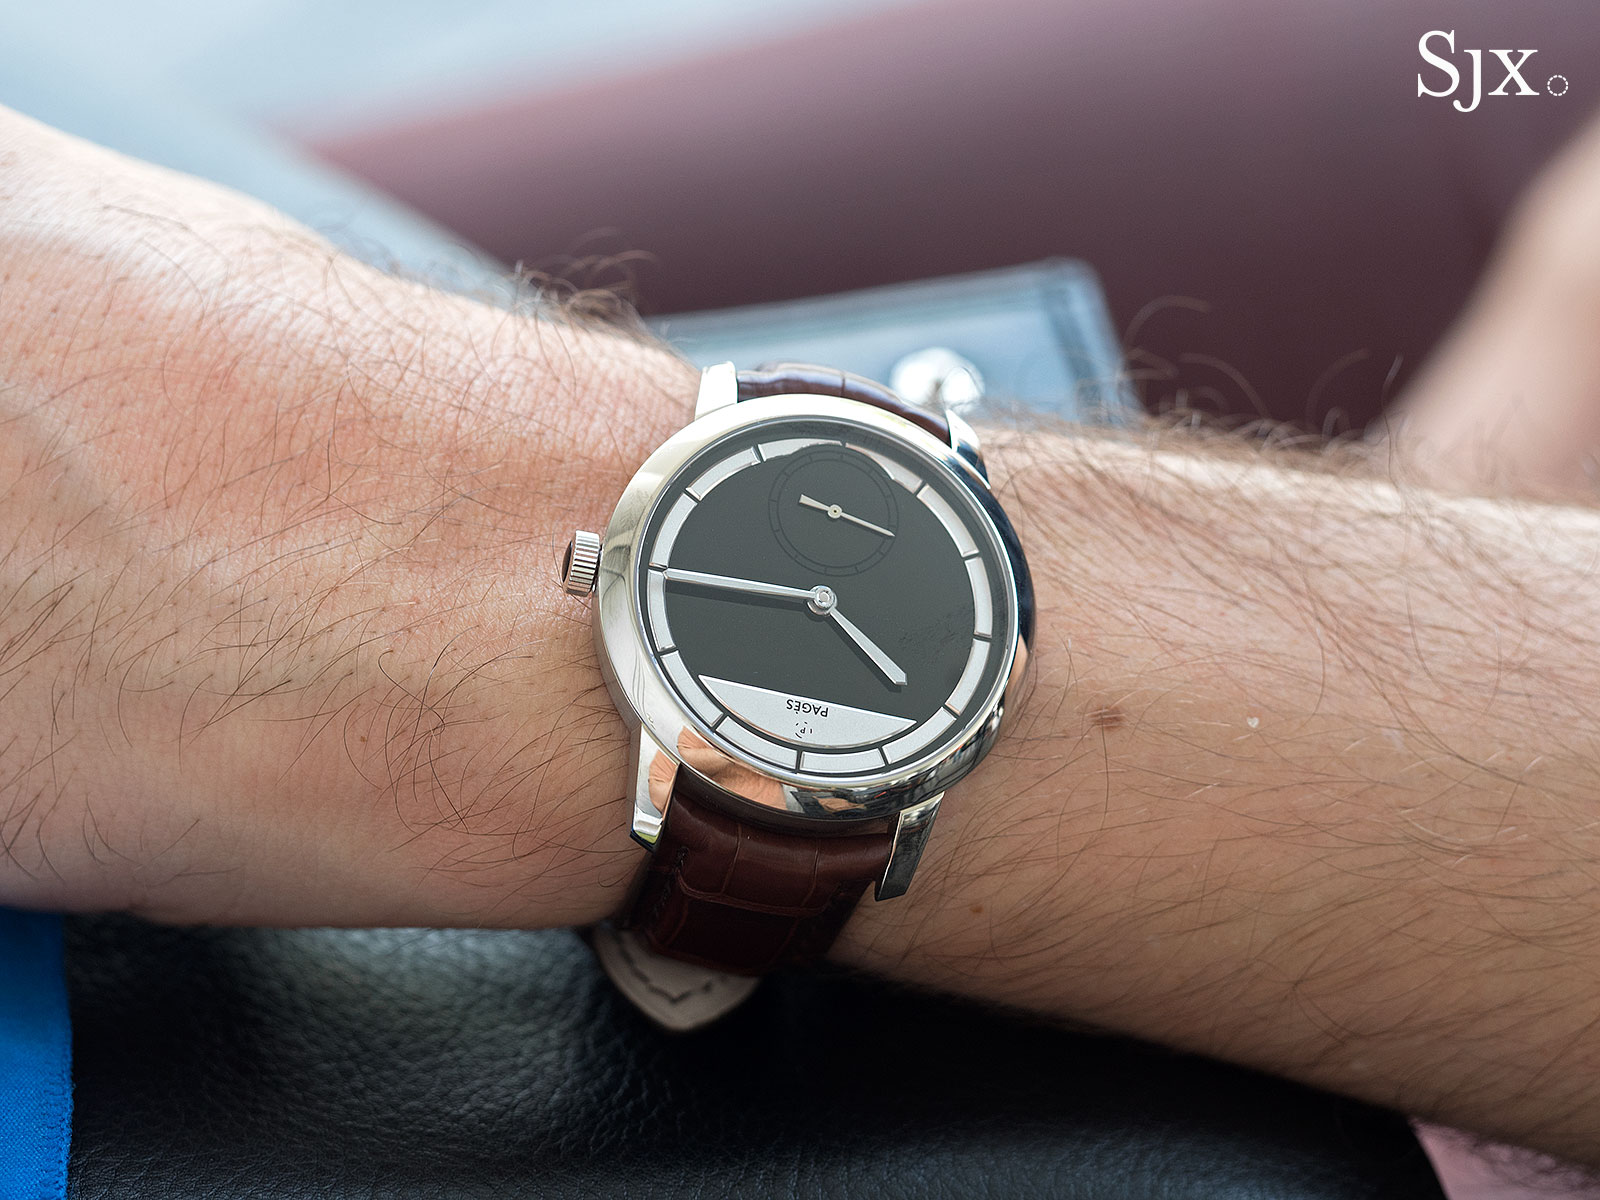 Raul Pages Soberly Onyx wrist shot